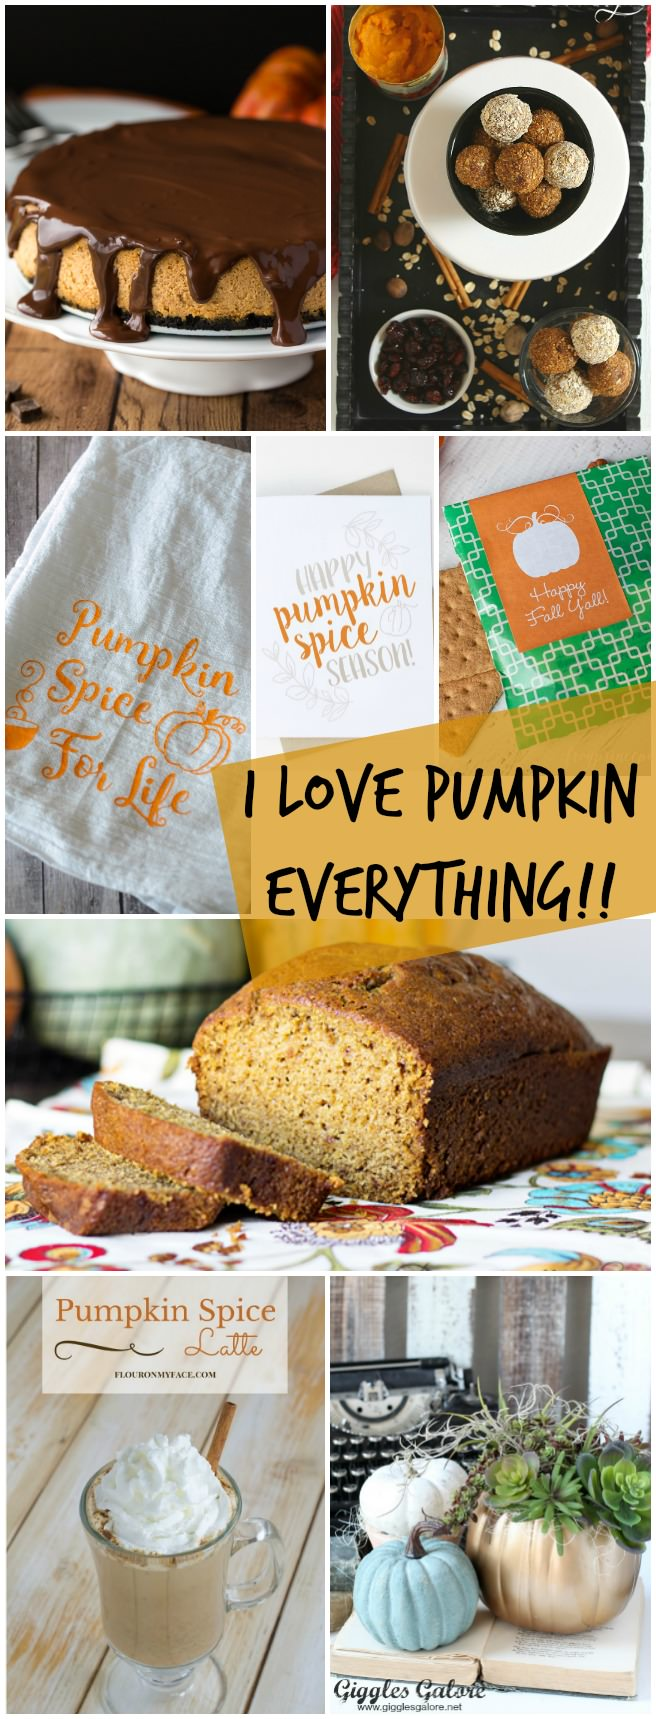 I love pumpkin everything! - Sweets, decor, DIY, and everything else with pumpkin spice!!